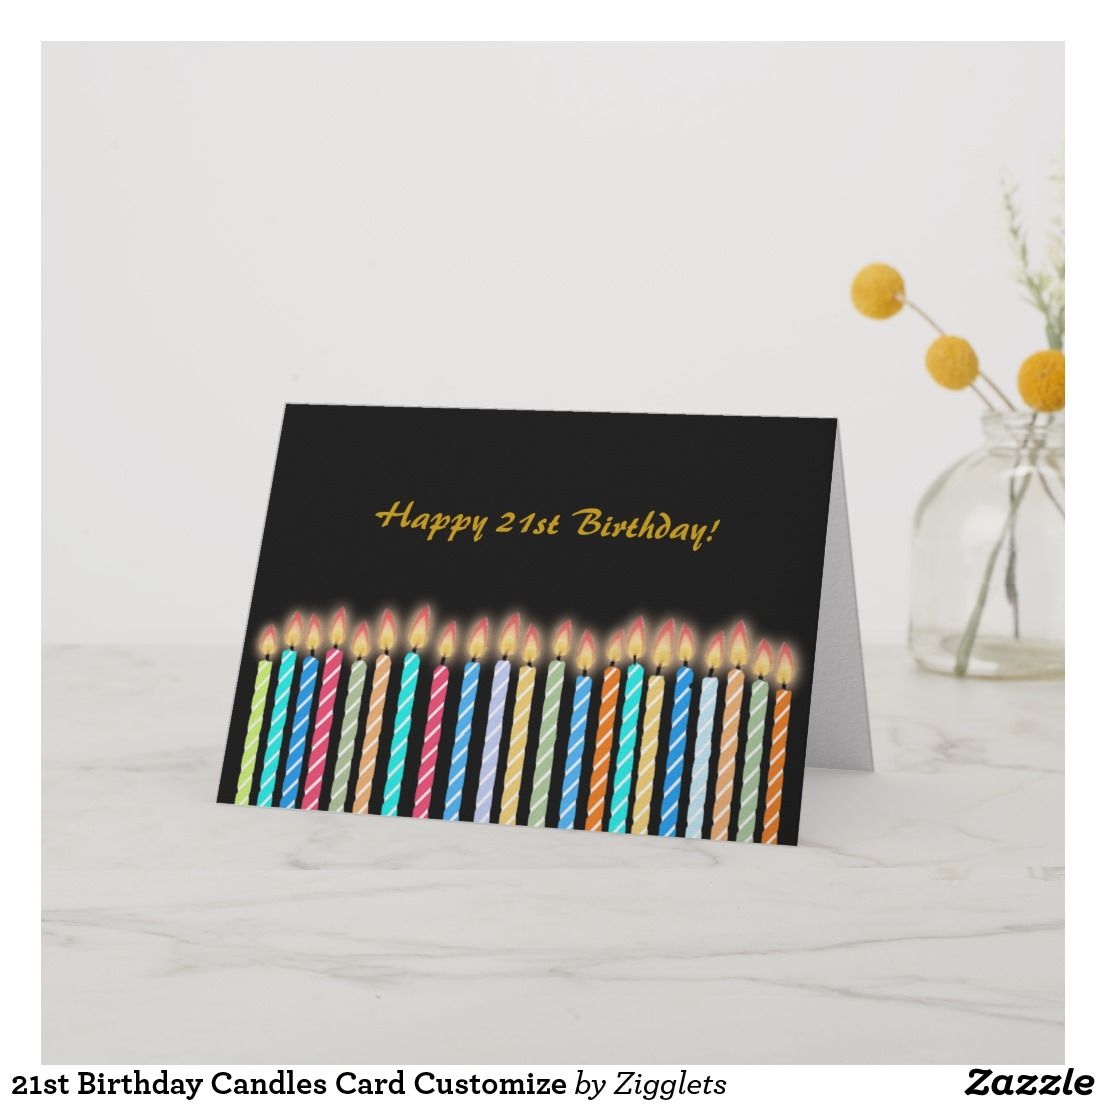 21st Birthday Candles Card Customize Cardsfunny Cardsgreeting Cardshappy Cardbirthday Greeting Cardsonline Cards